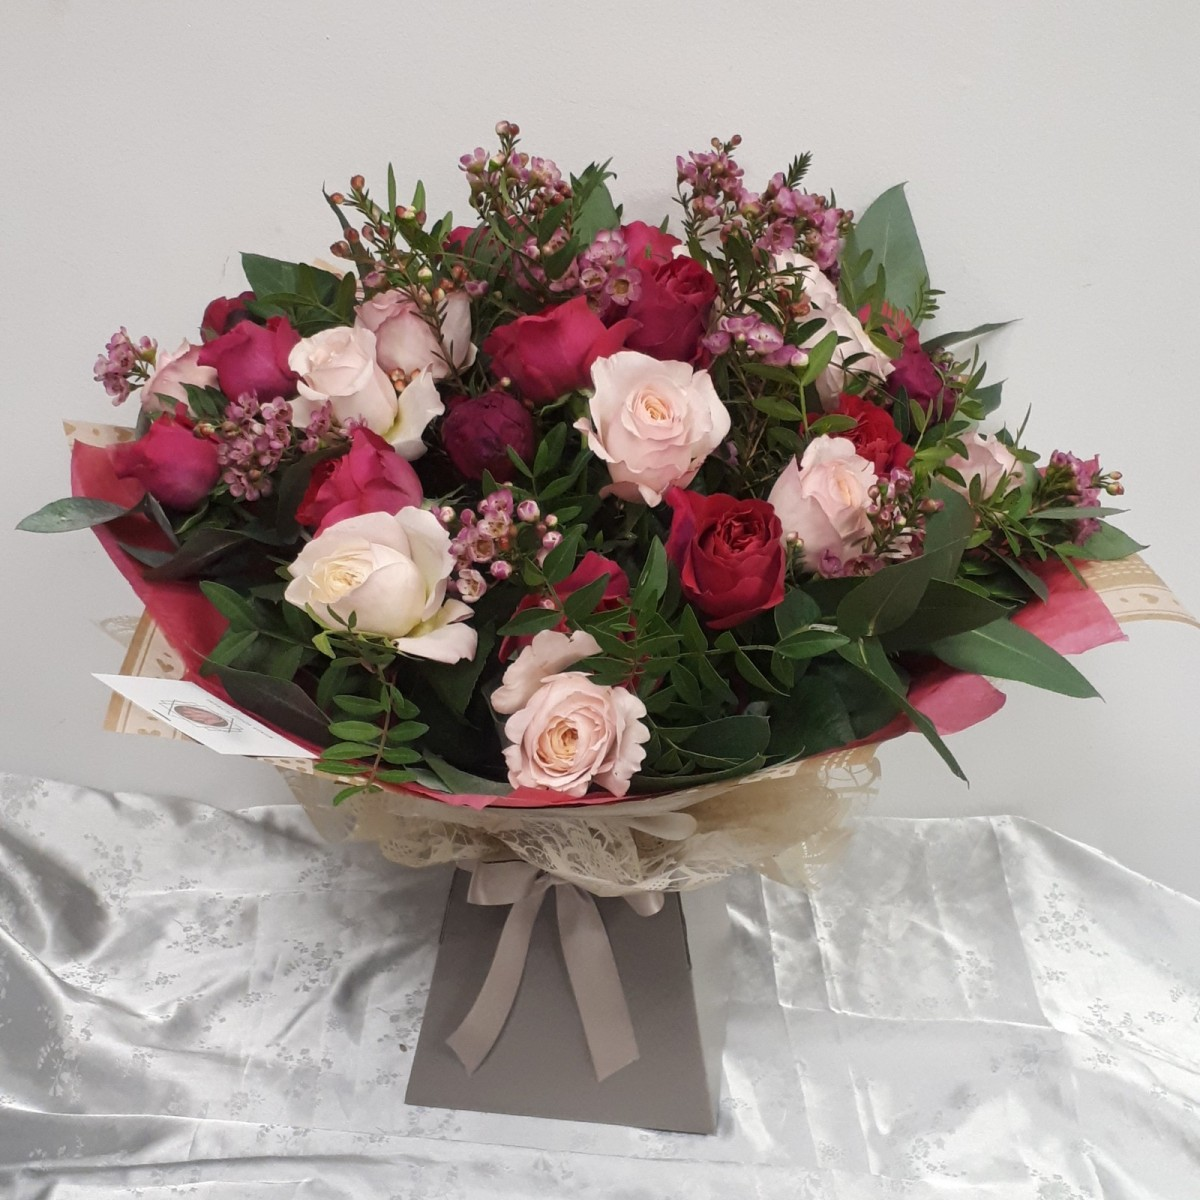 in the Valentine Bouquets category